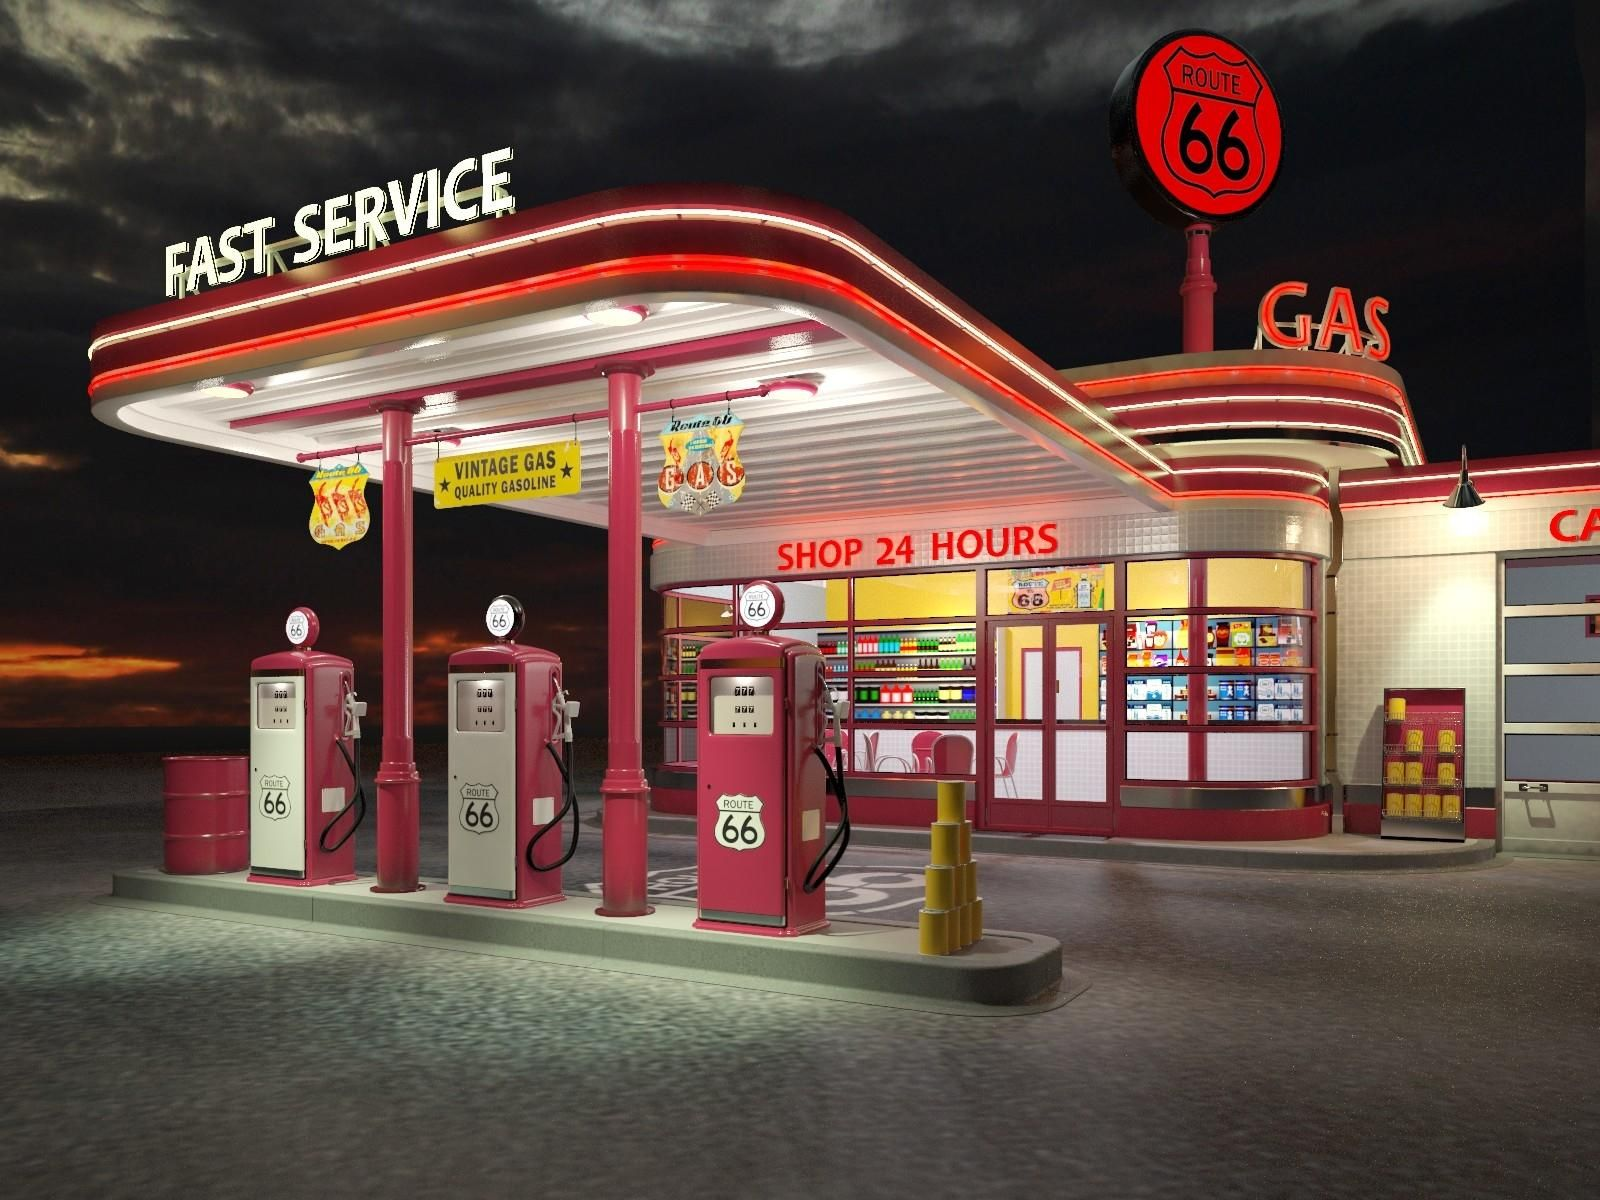 500+ Best Vintage Gas Stations images in 2020 | gas station, old gas  stations, gas